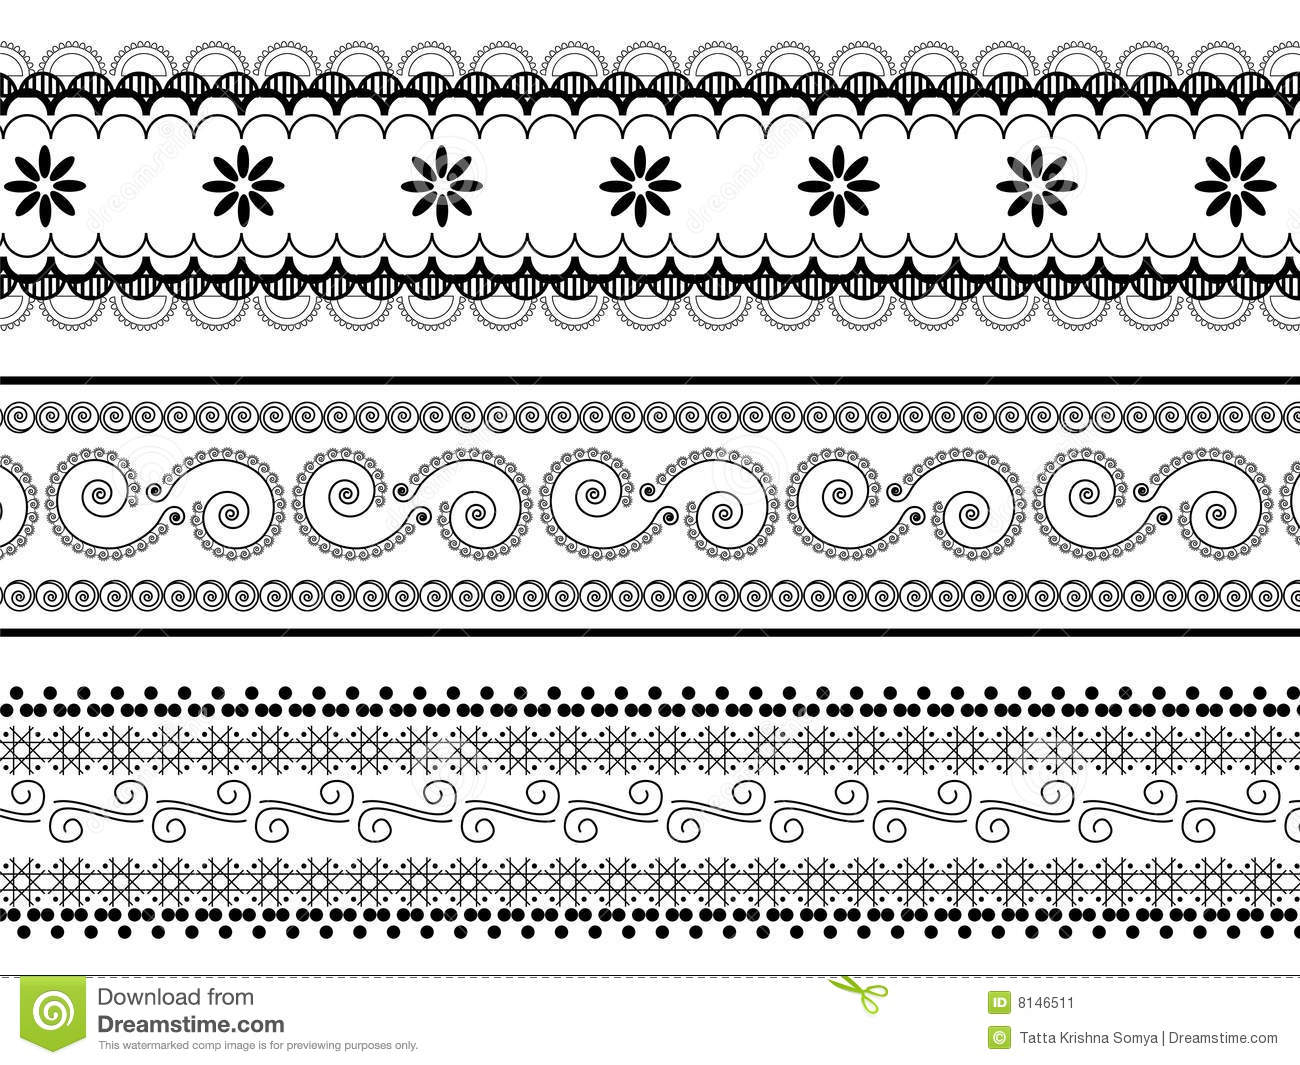 Henna borders stock illustration. Illustration of motif.